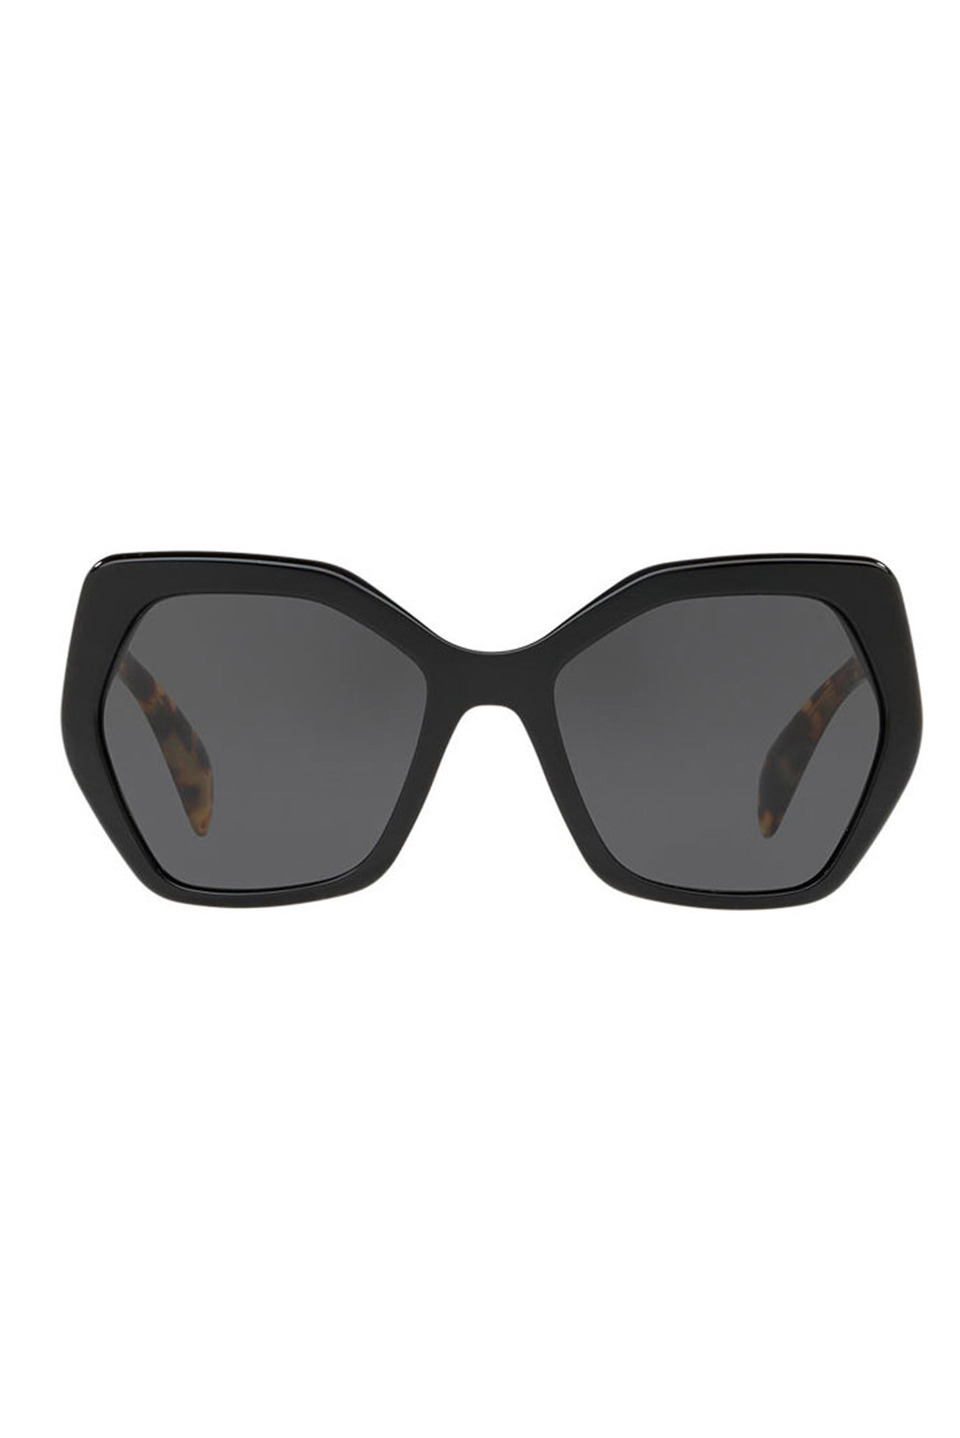 Ladies Sunglasses in Black and Light Havana Arms and Gray